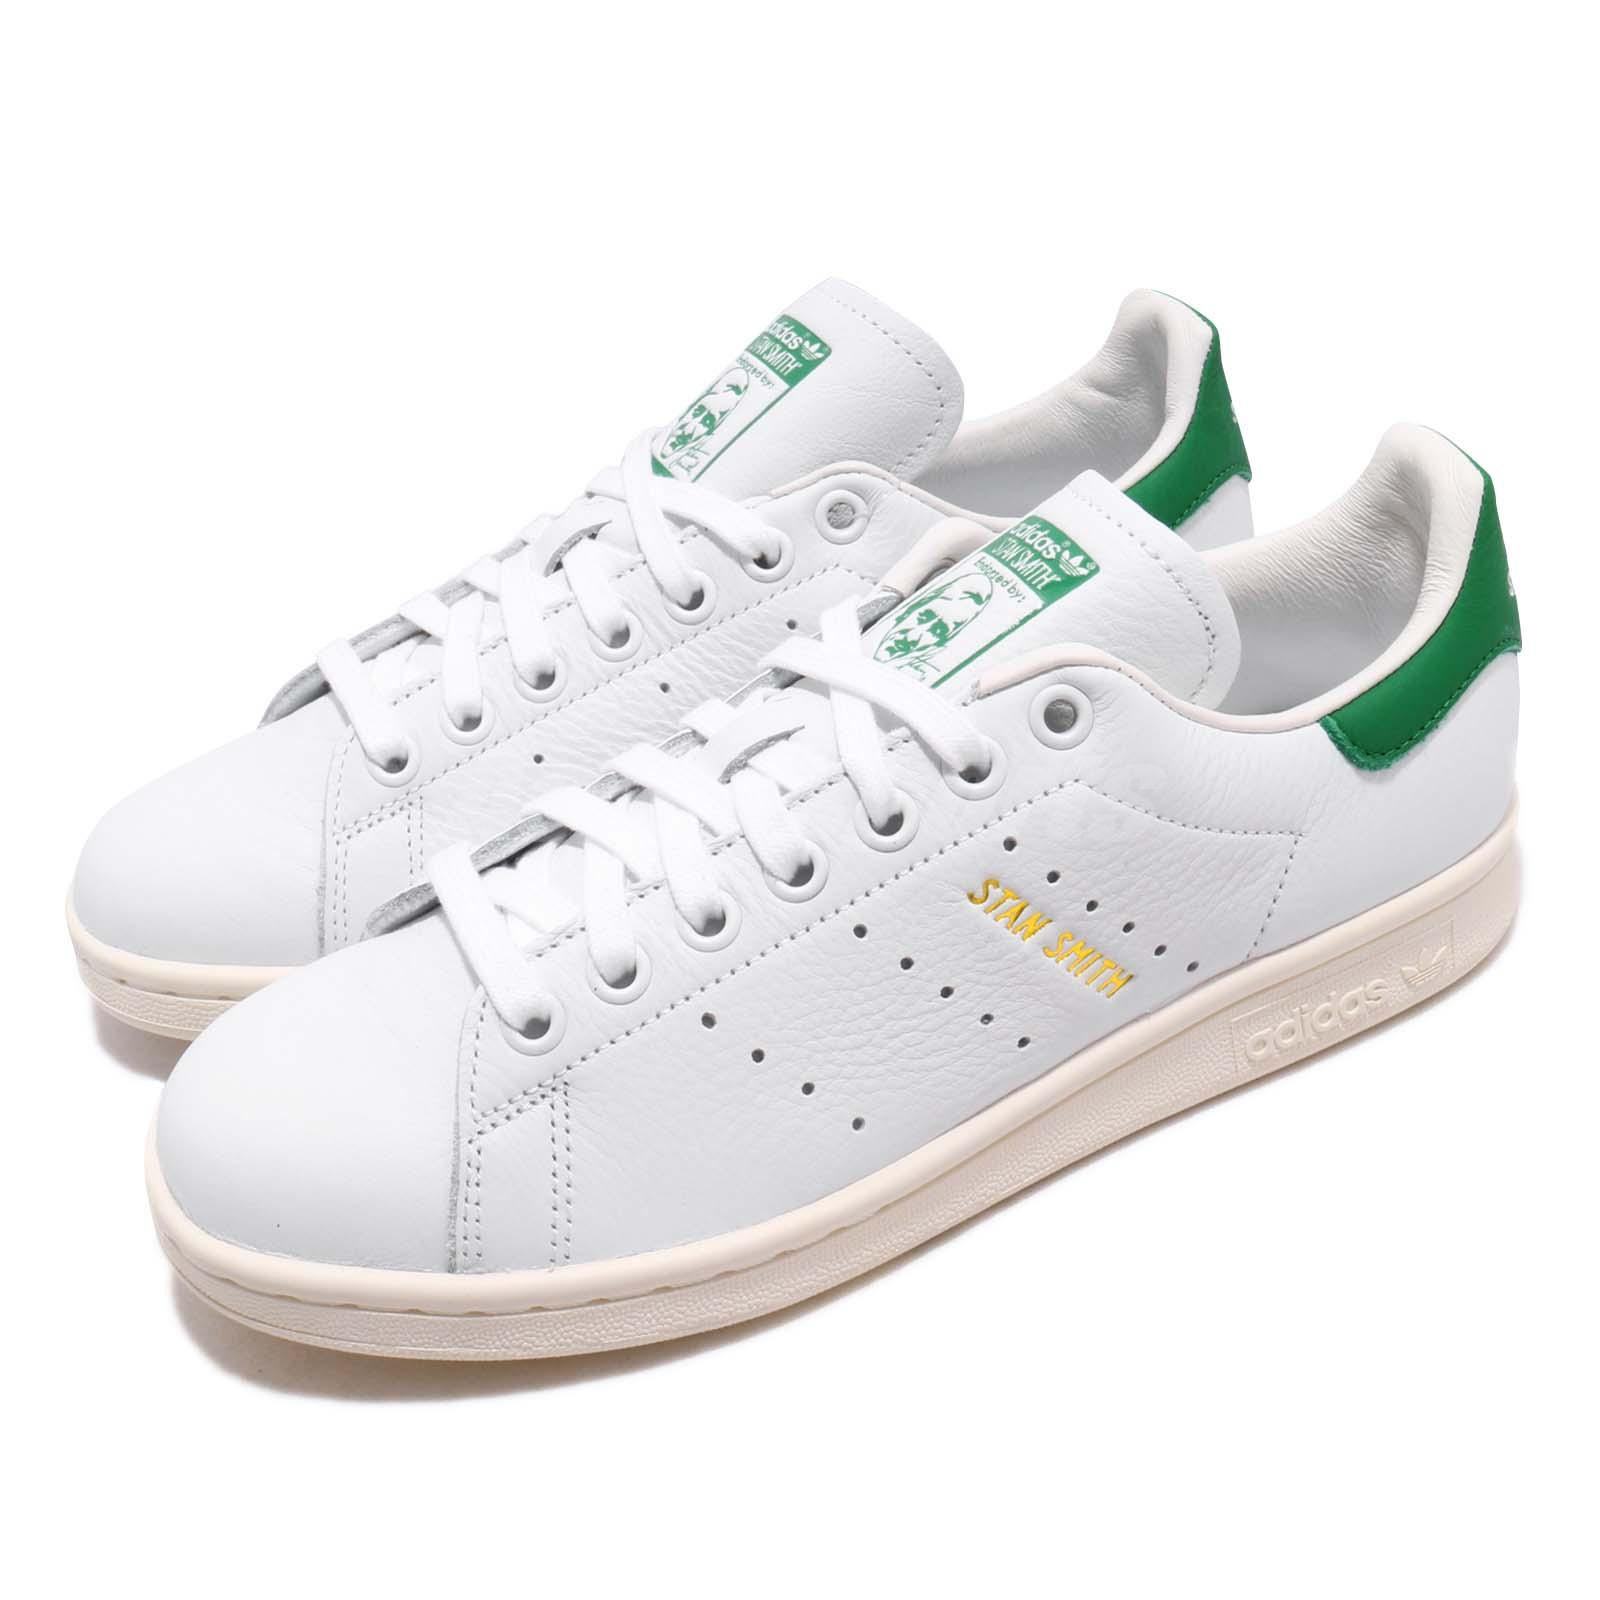 size 40 e33fd 64e91 Details about adidas Originals Stan Smith Forever White Green Men Casual  Shoes Sneakers EF7508